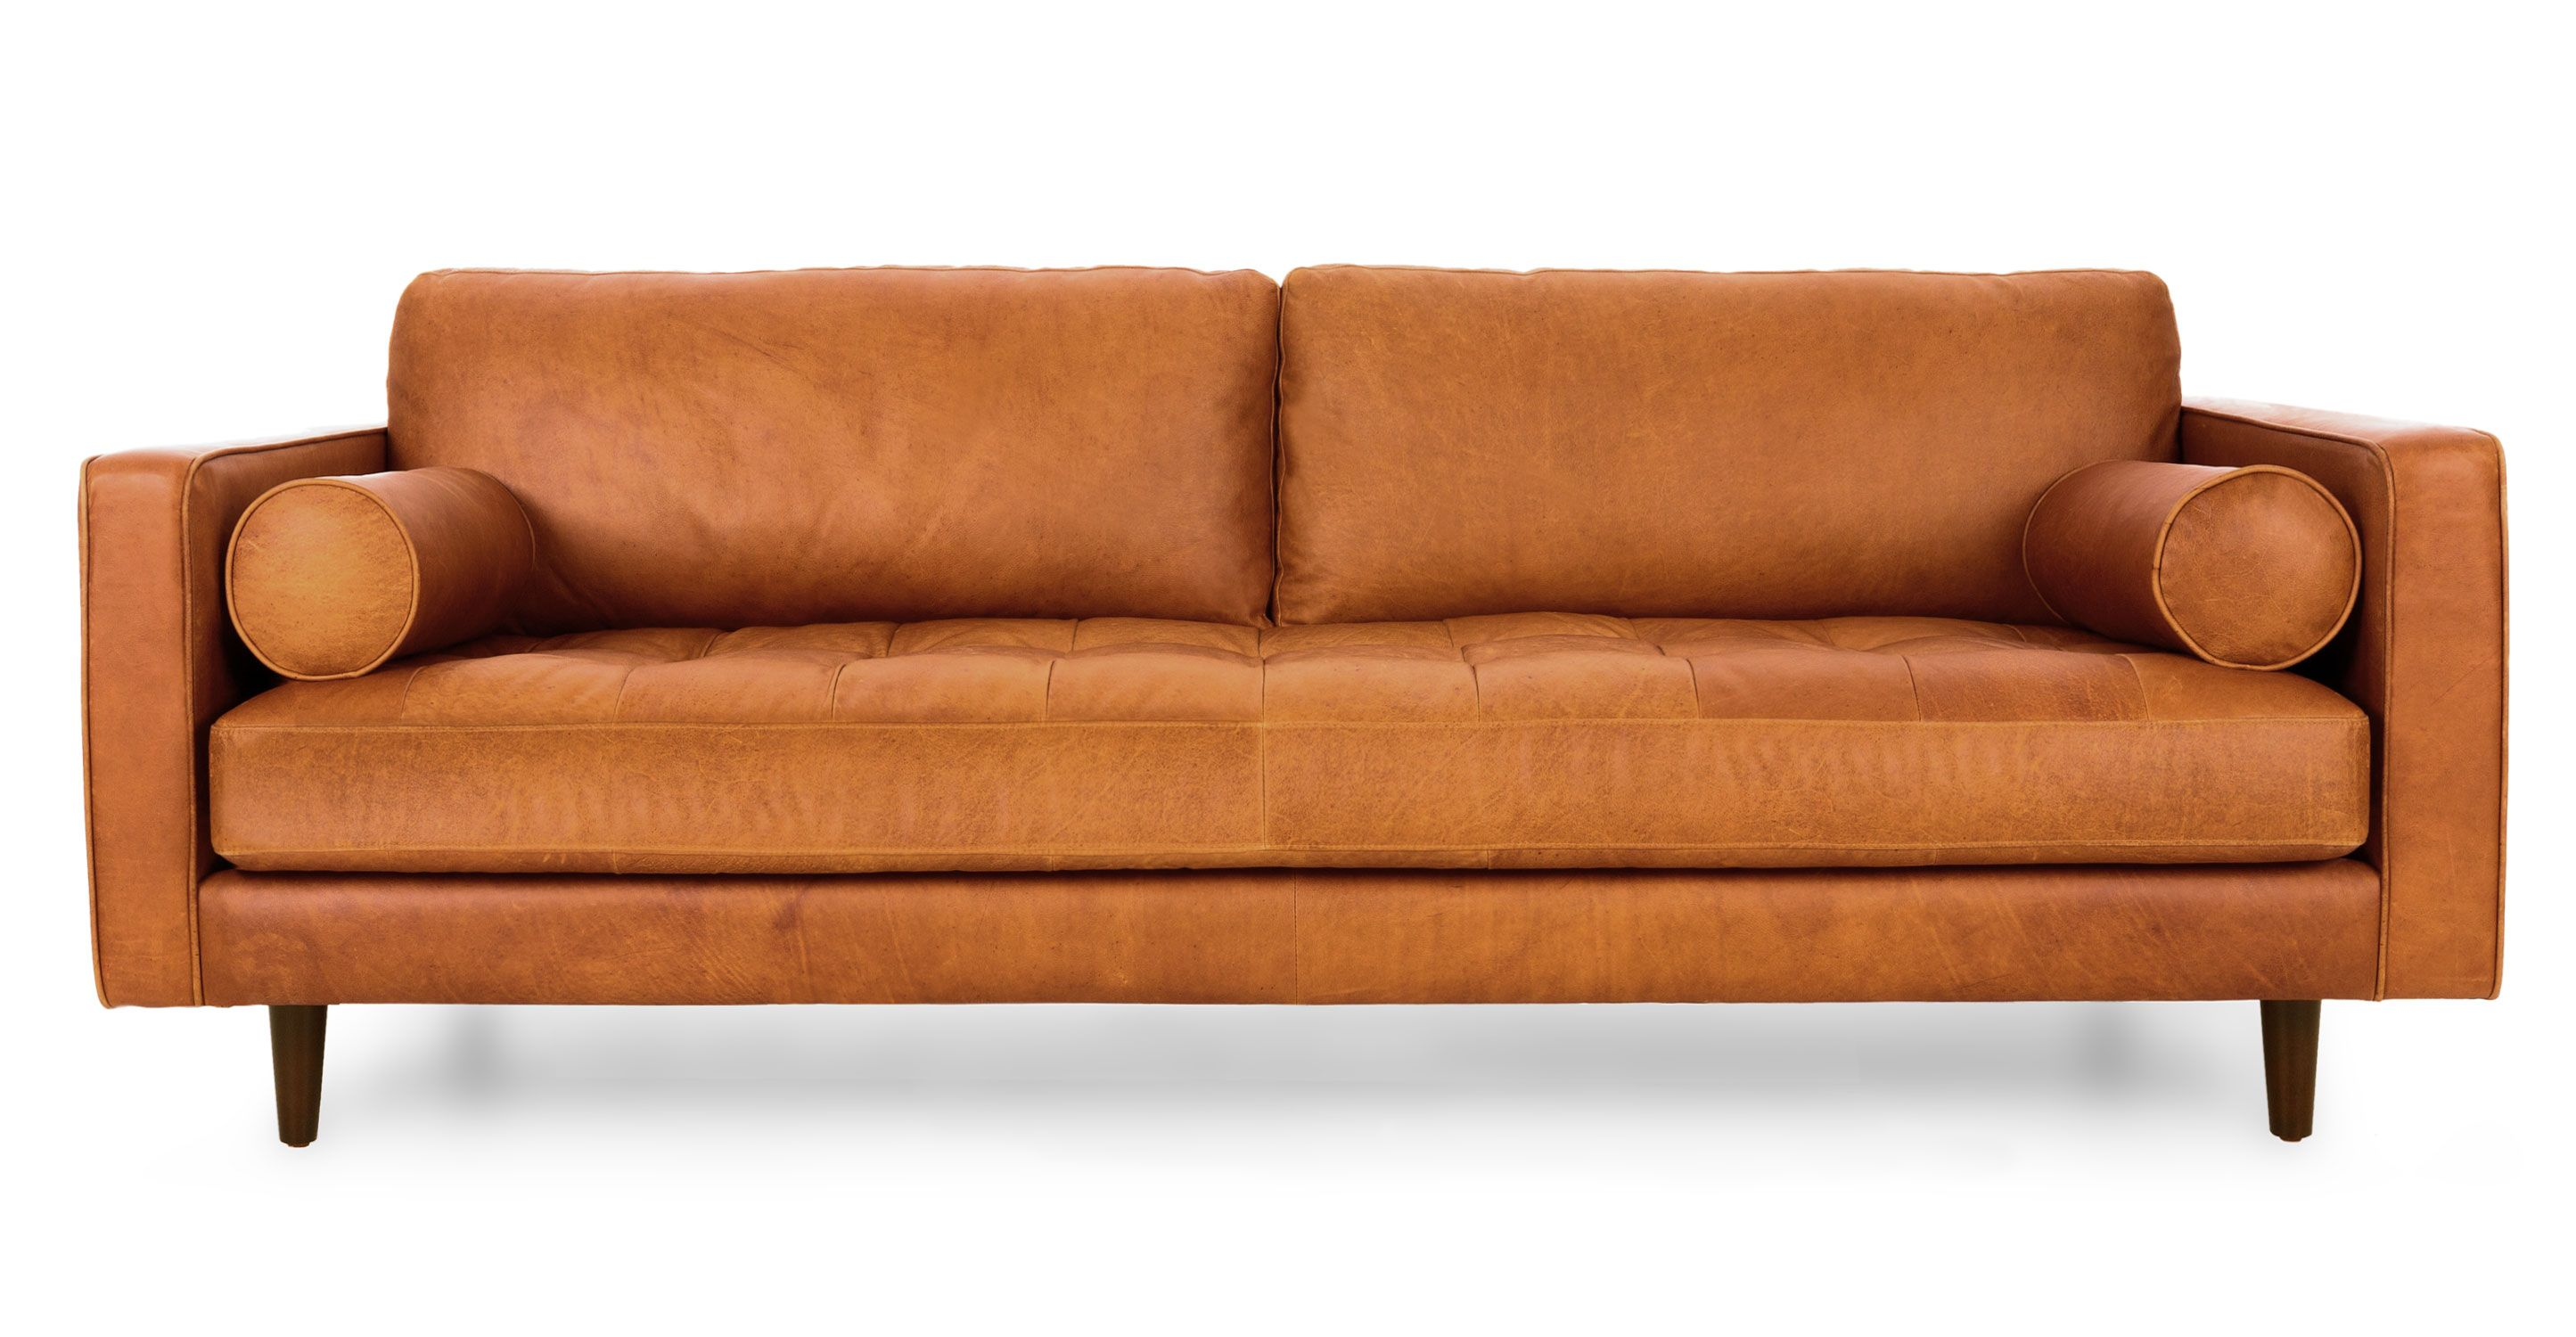 Tan brown leather sofa italian leather article sven for Contemporary leather furniture